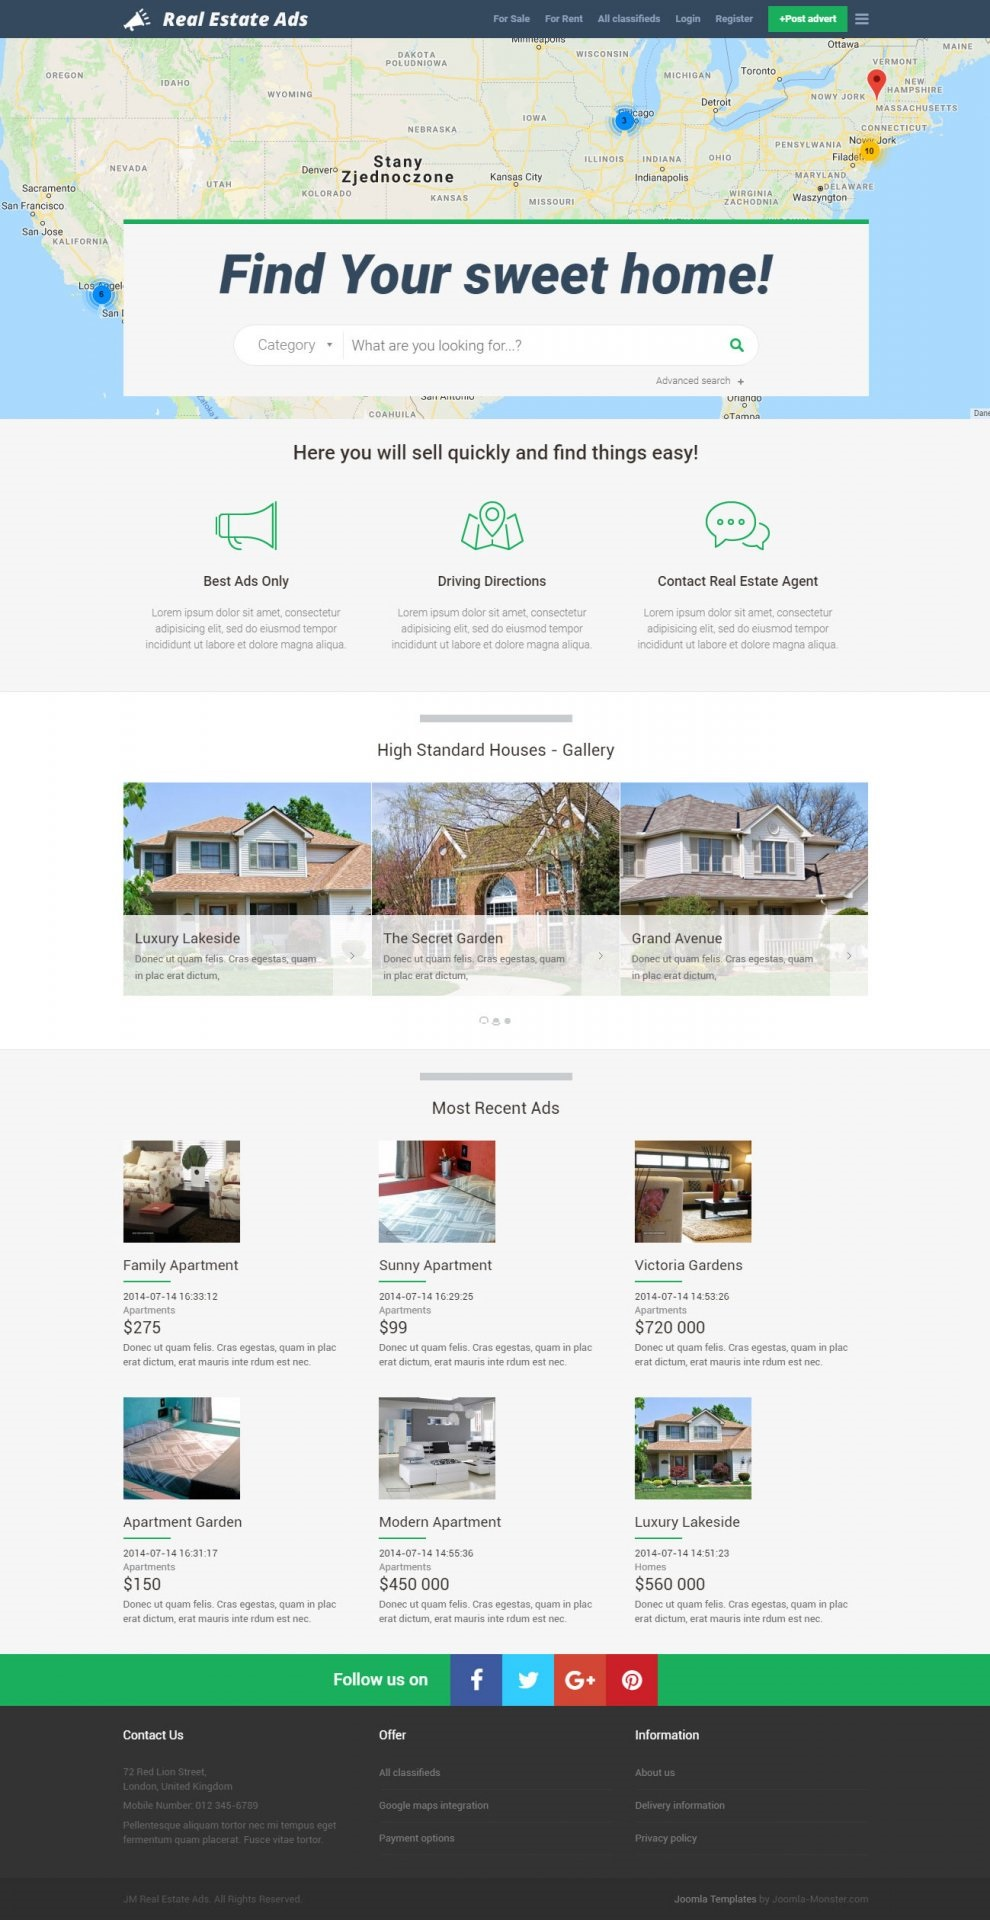 004 Imposing Real Estate Advertising Template High Def  Facebook Ad CraigslistFull